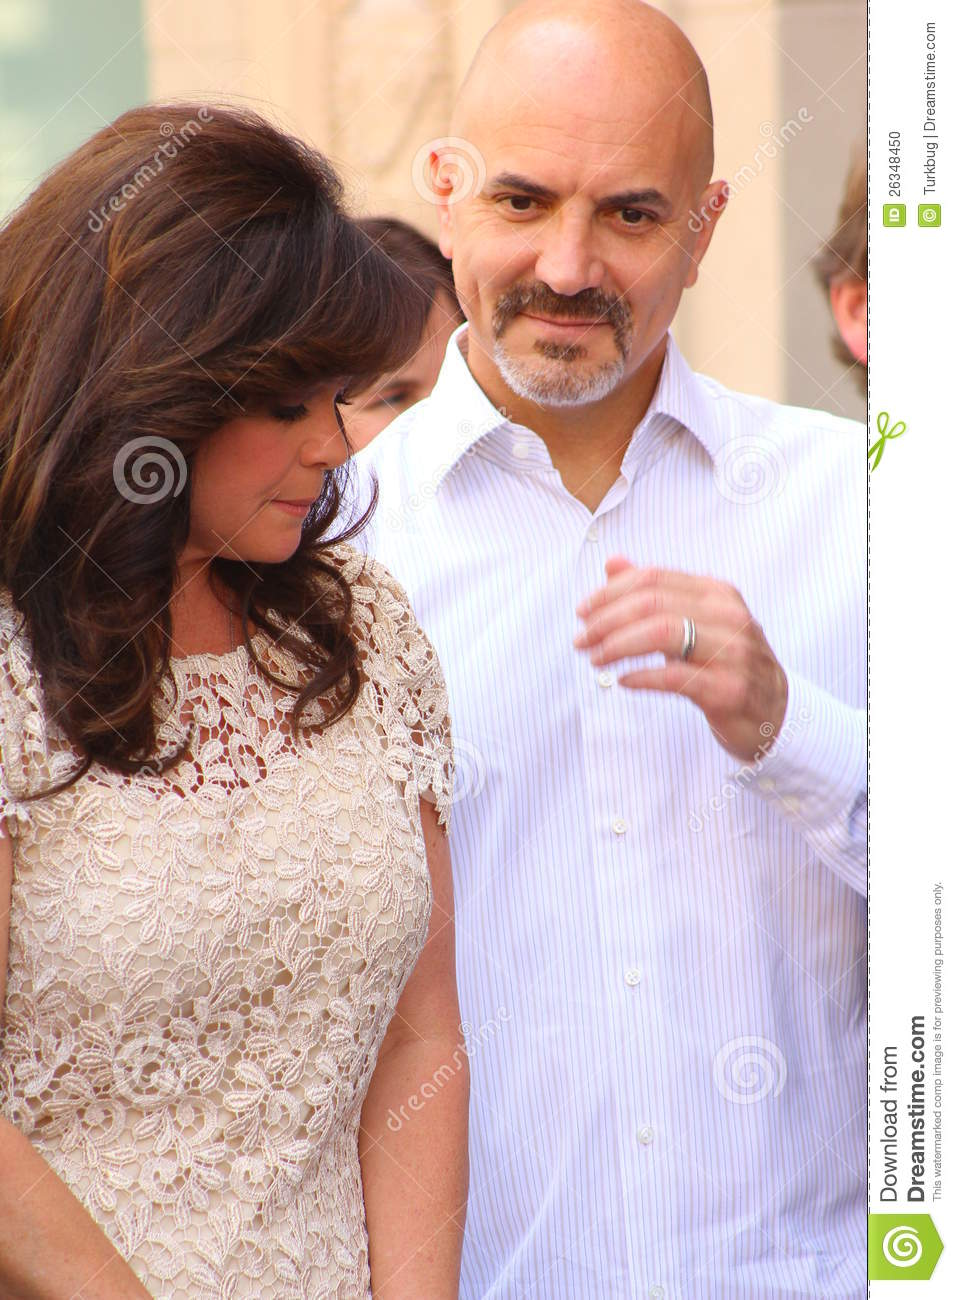 Valerie bertinelli and husband editorial image image for Who is valerie bertinelli married to